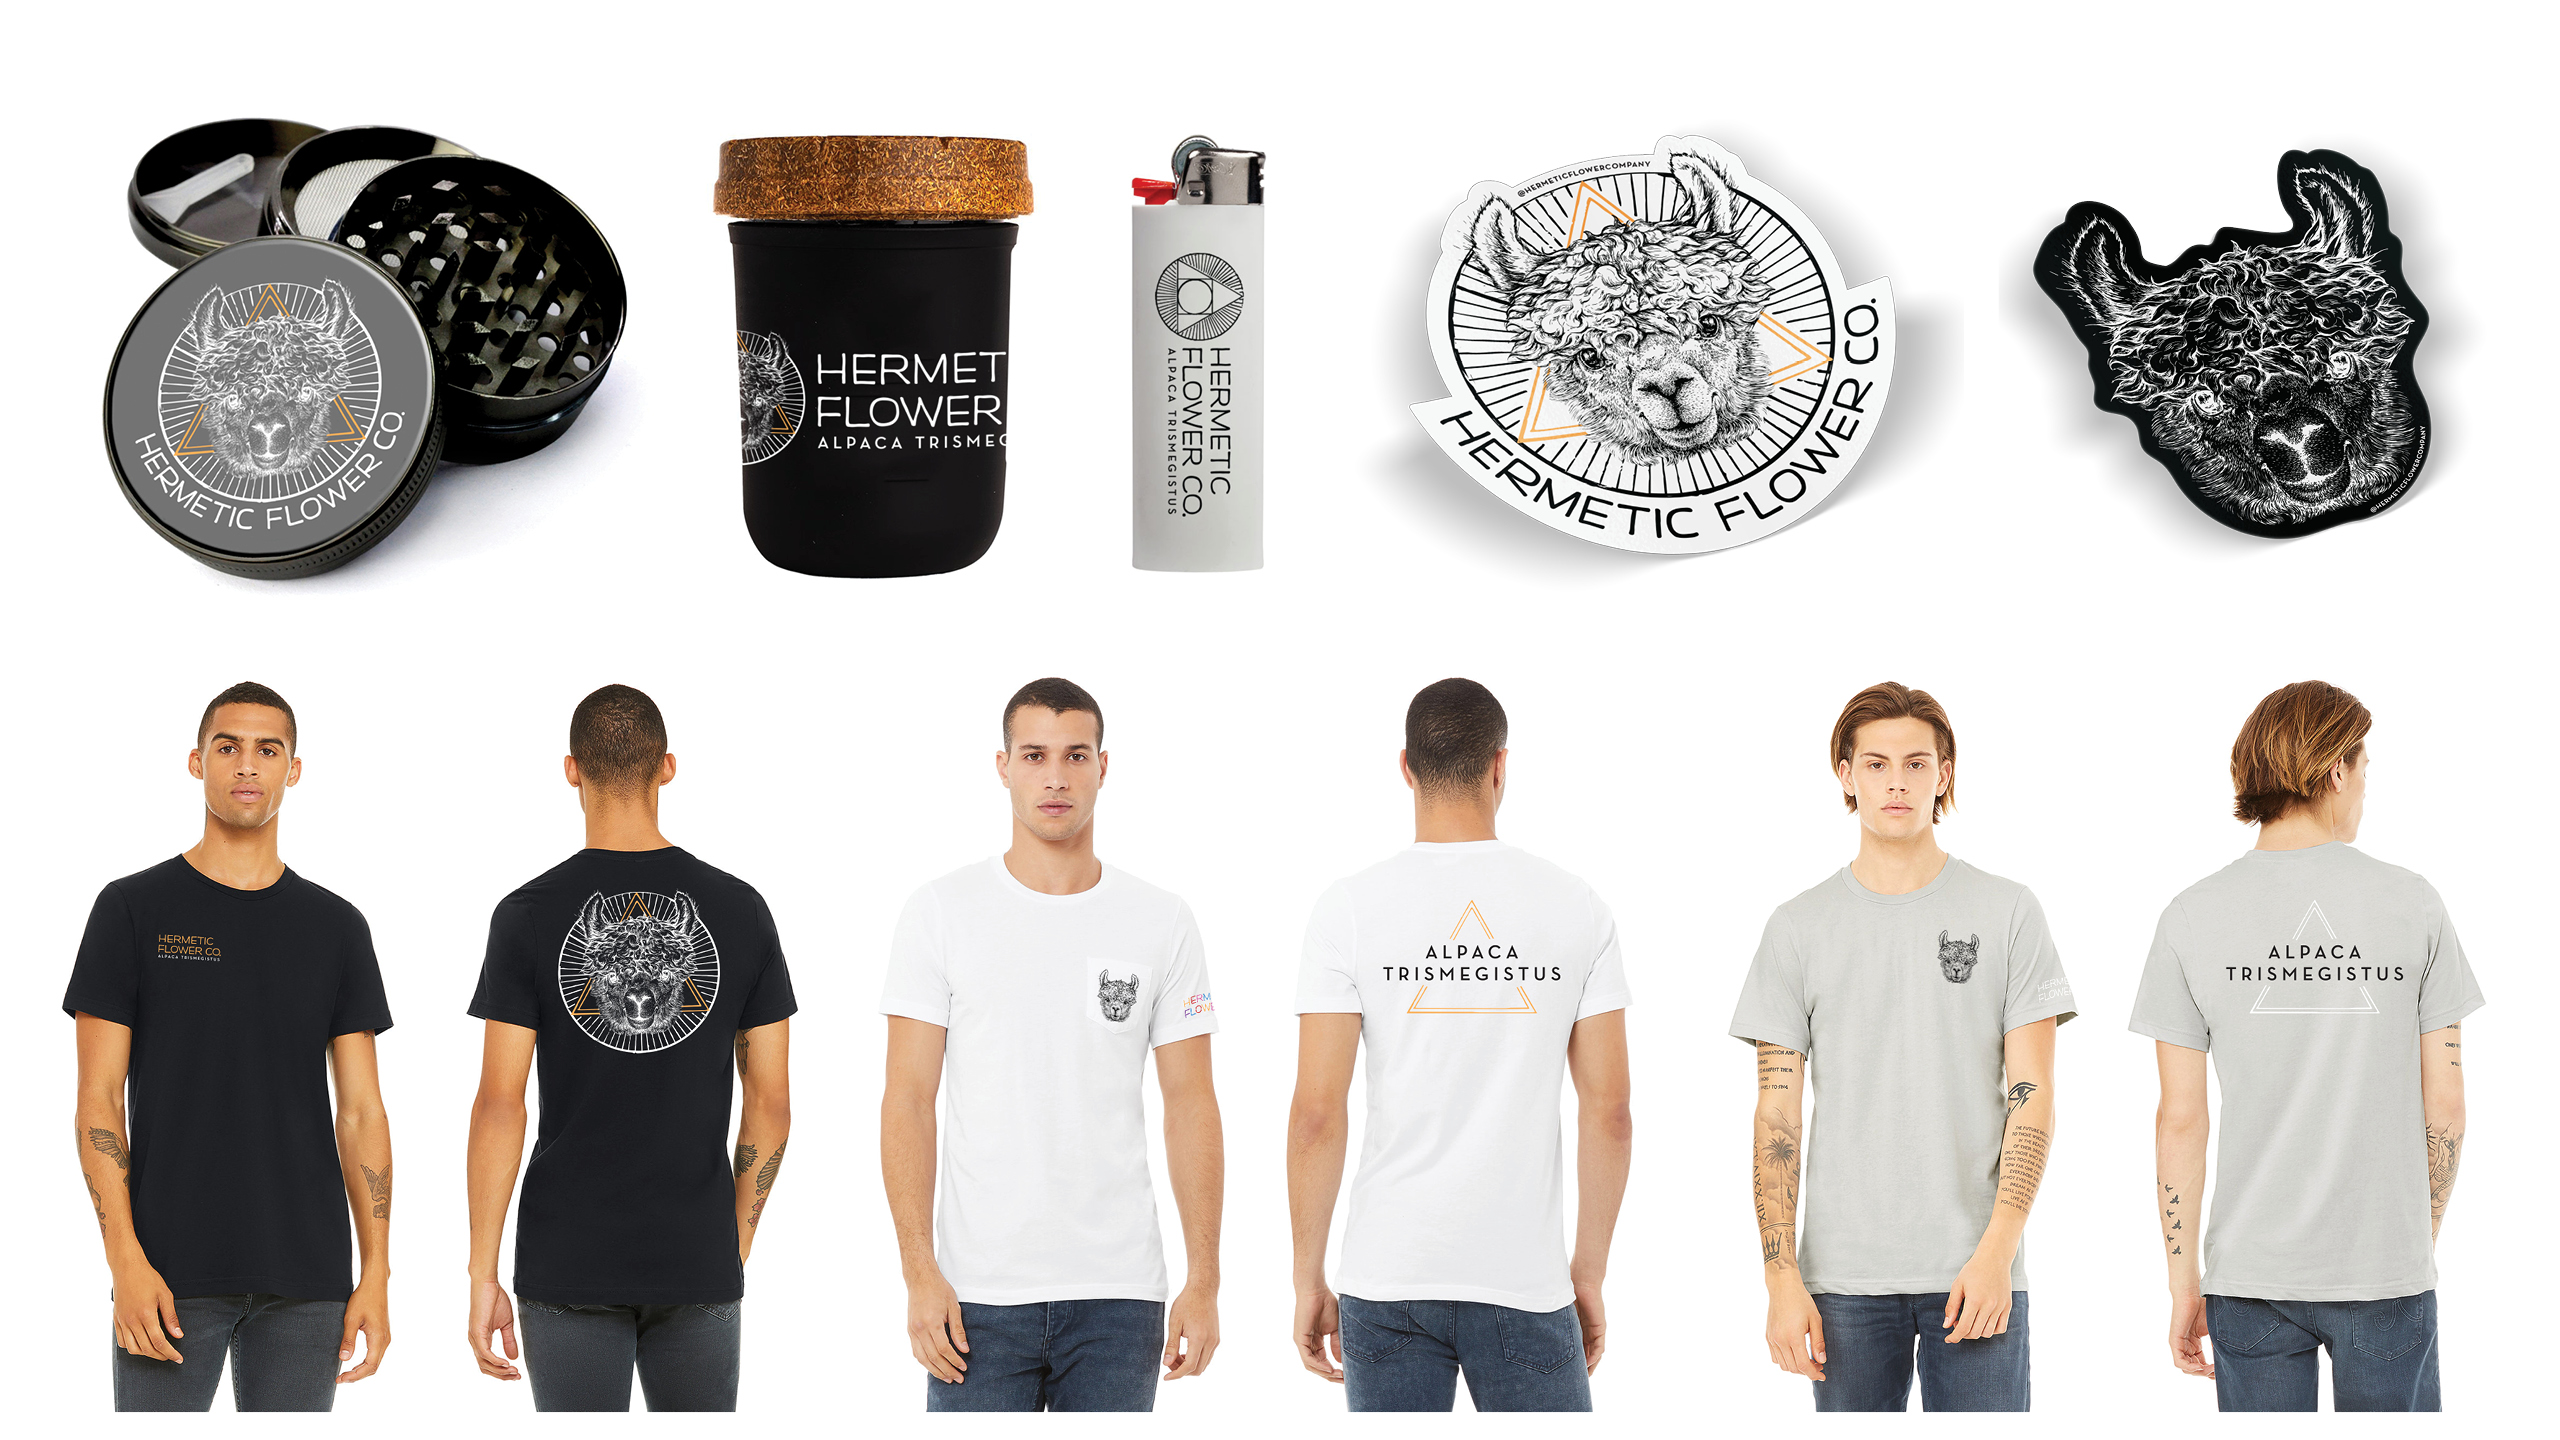 Hermetic Flower Company Branded Apparel by High Road Design Studio